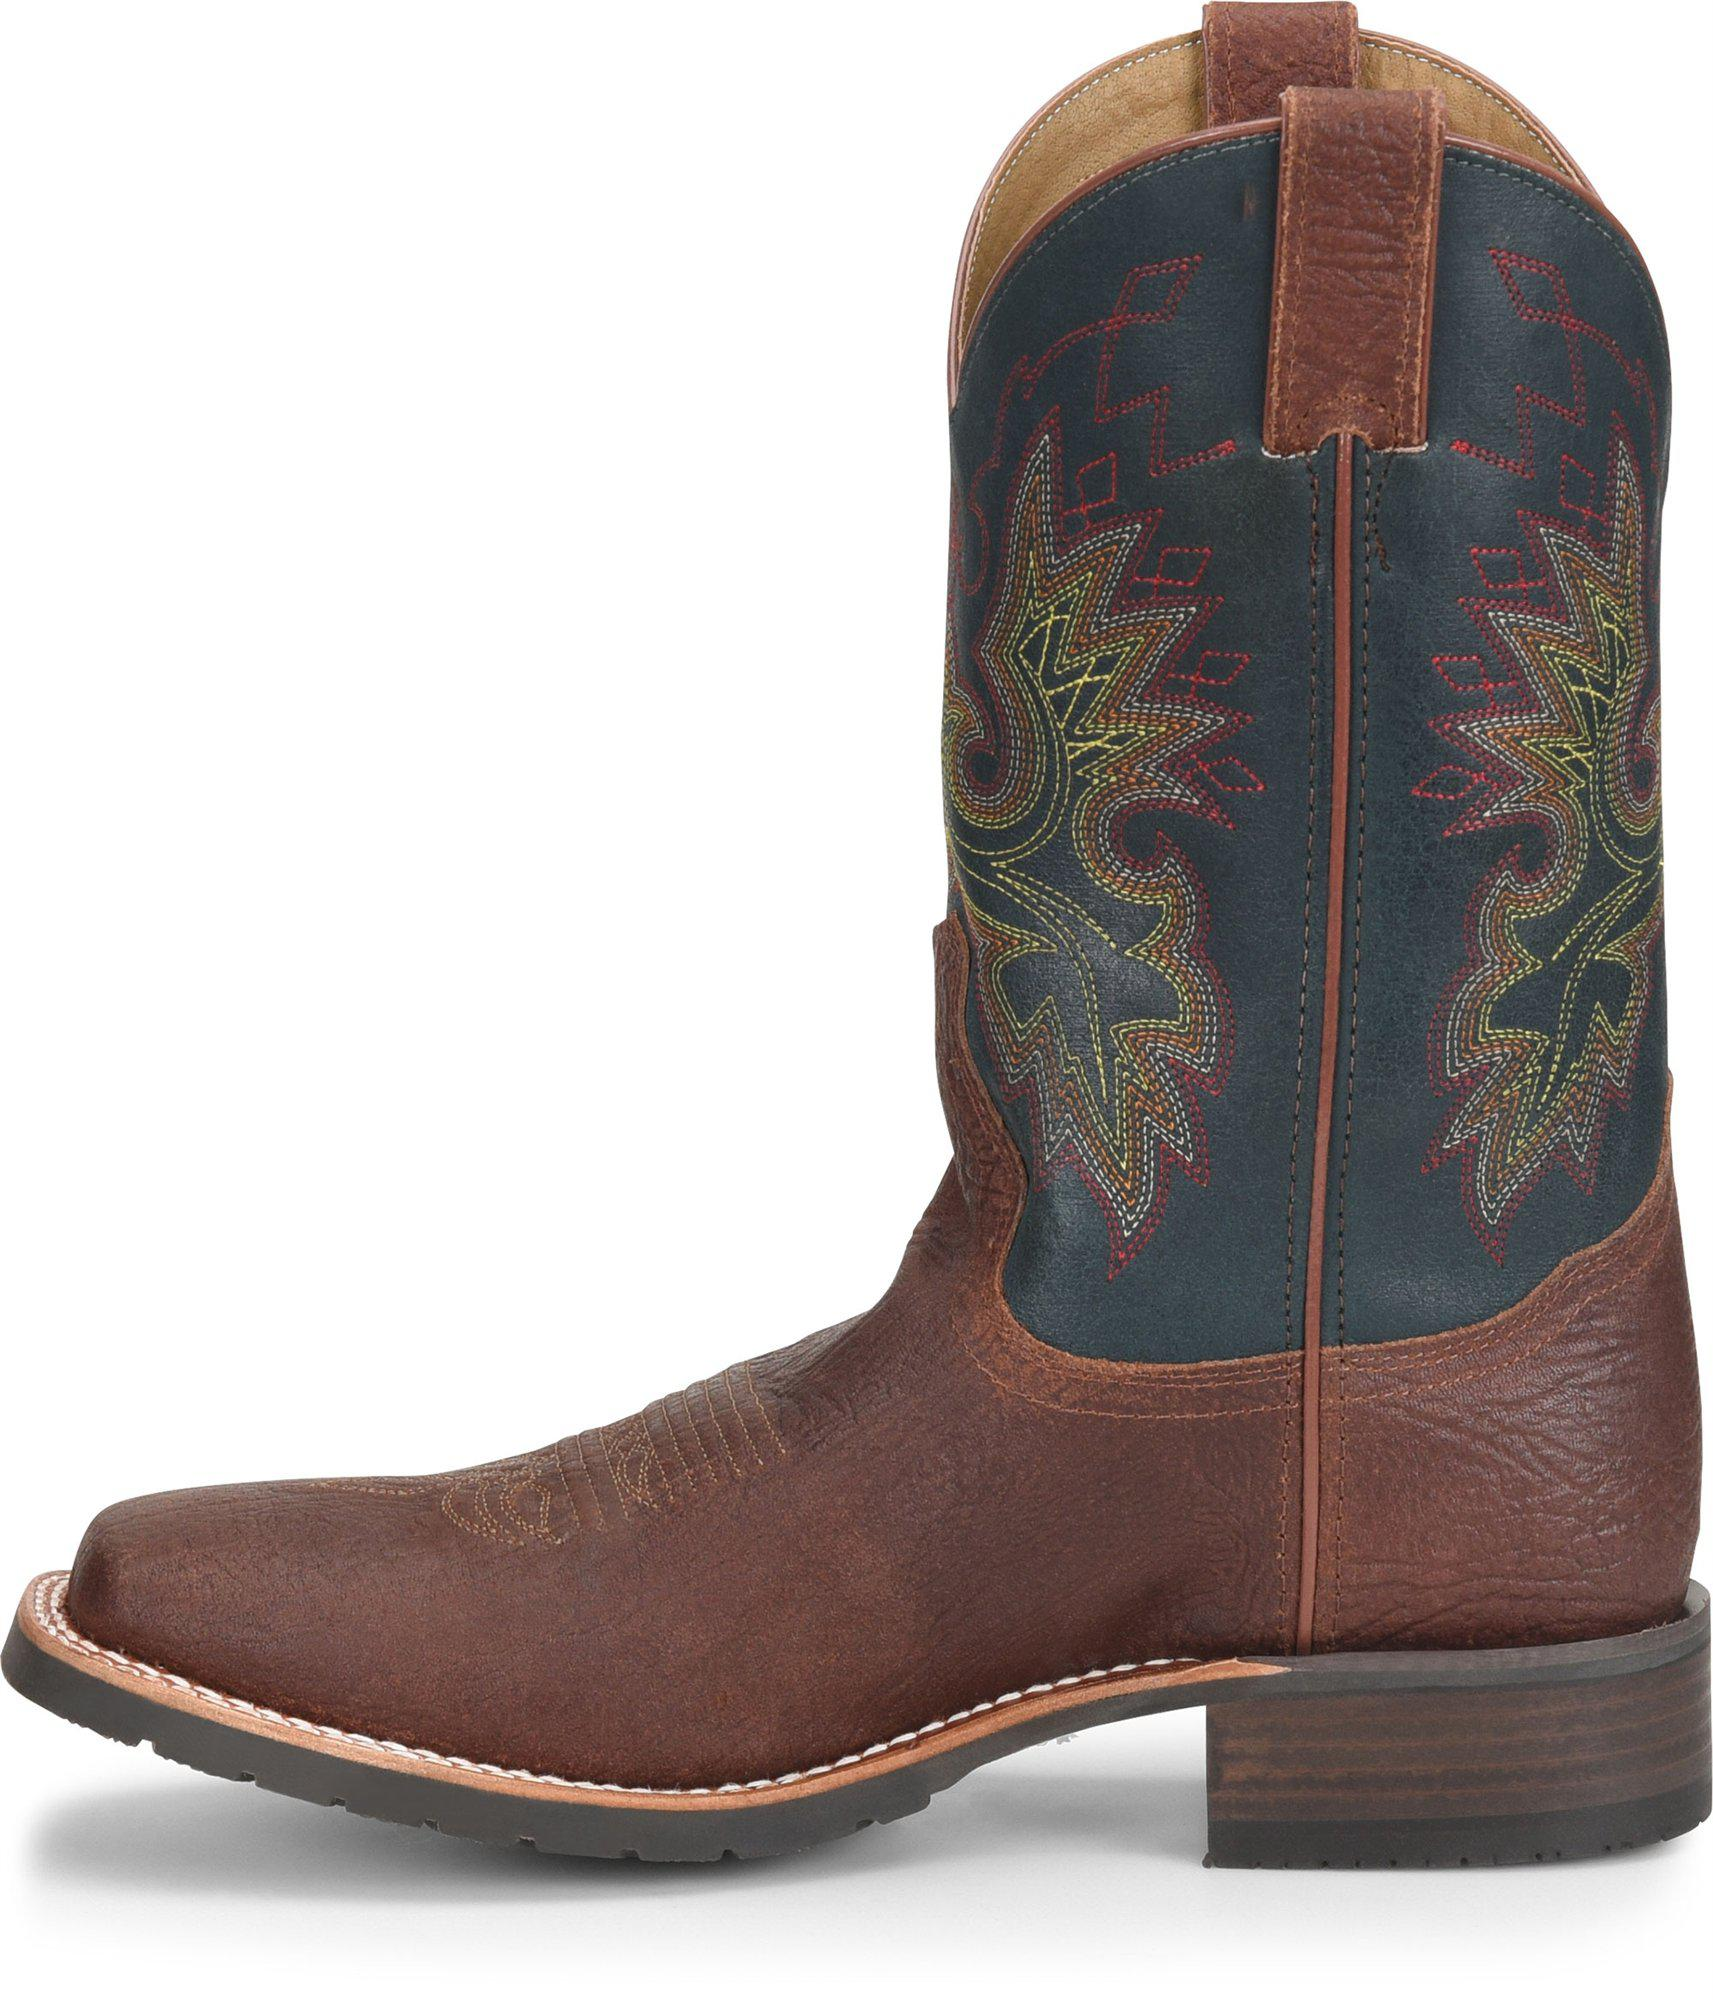 8ac397a21674 Lyst - Double H Boot 11 Wide Square Toe Roper in Brown for Men